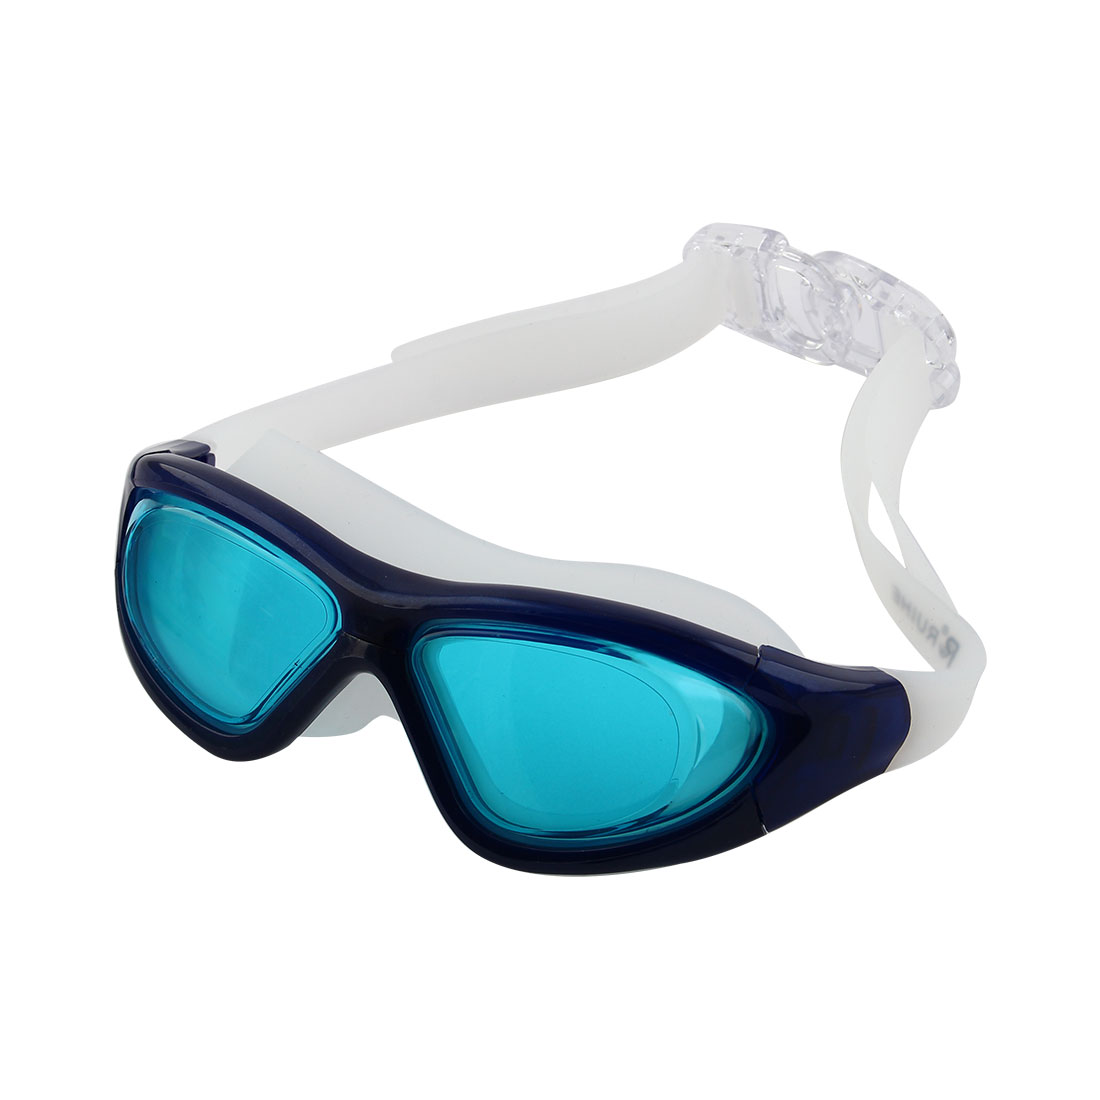 Clear Wide Vision Anti Fog Adjustable Belt Swim Glasses Swimming Goggles Teal Blue w Storage Case for Adult Men Women